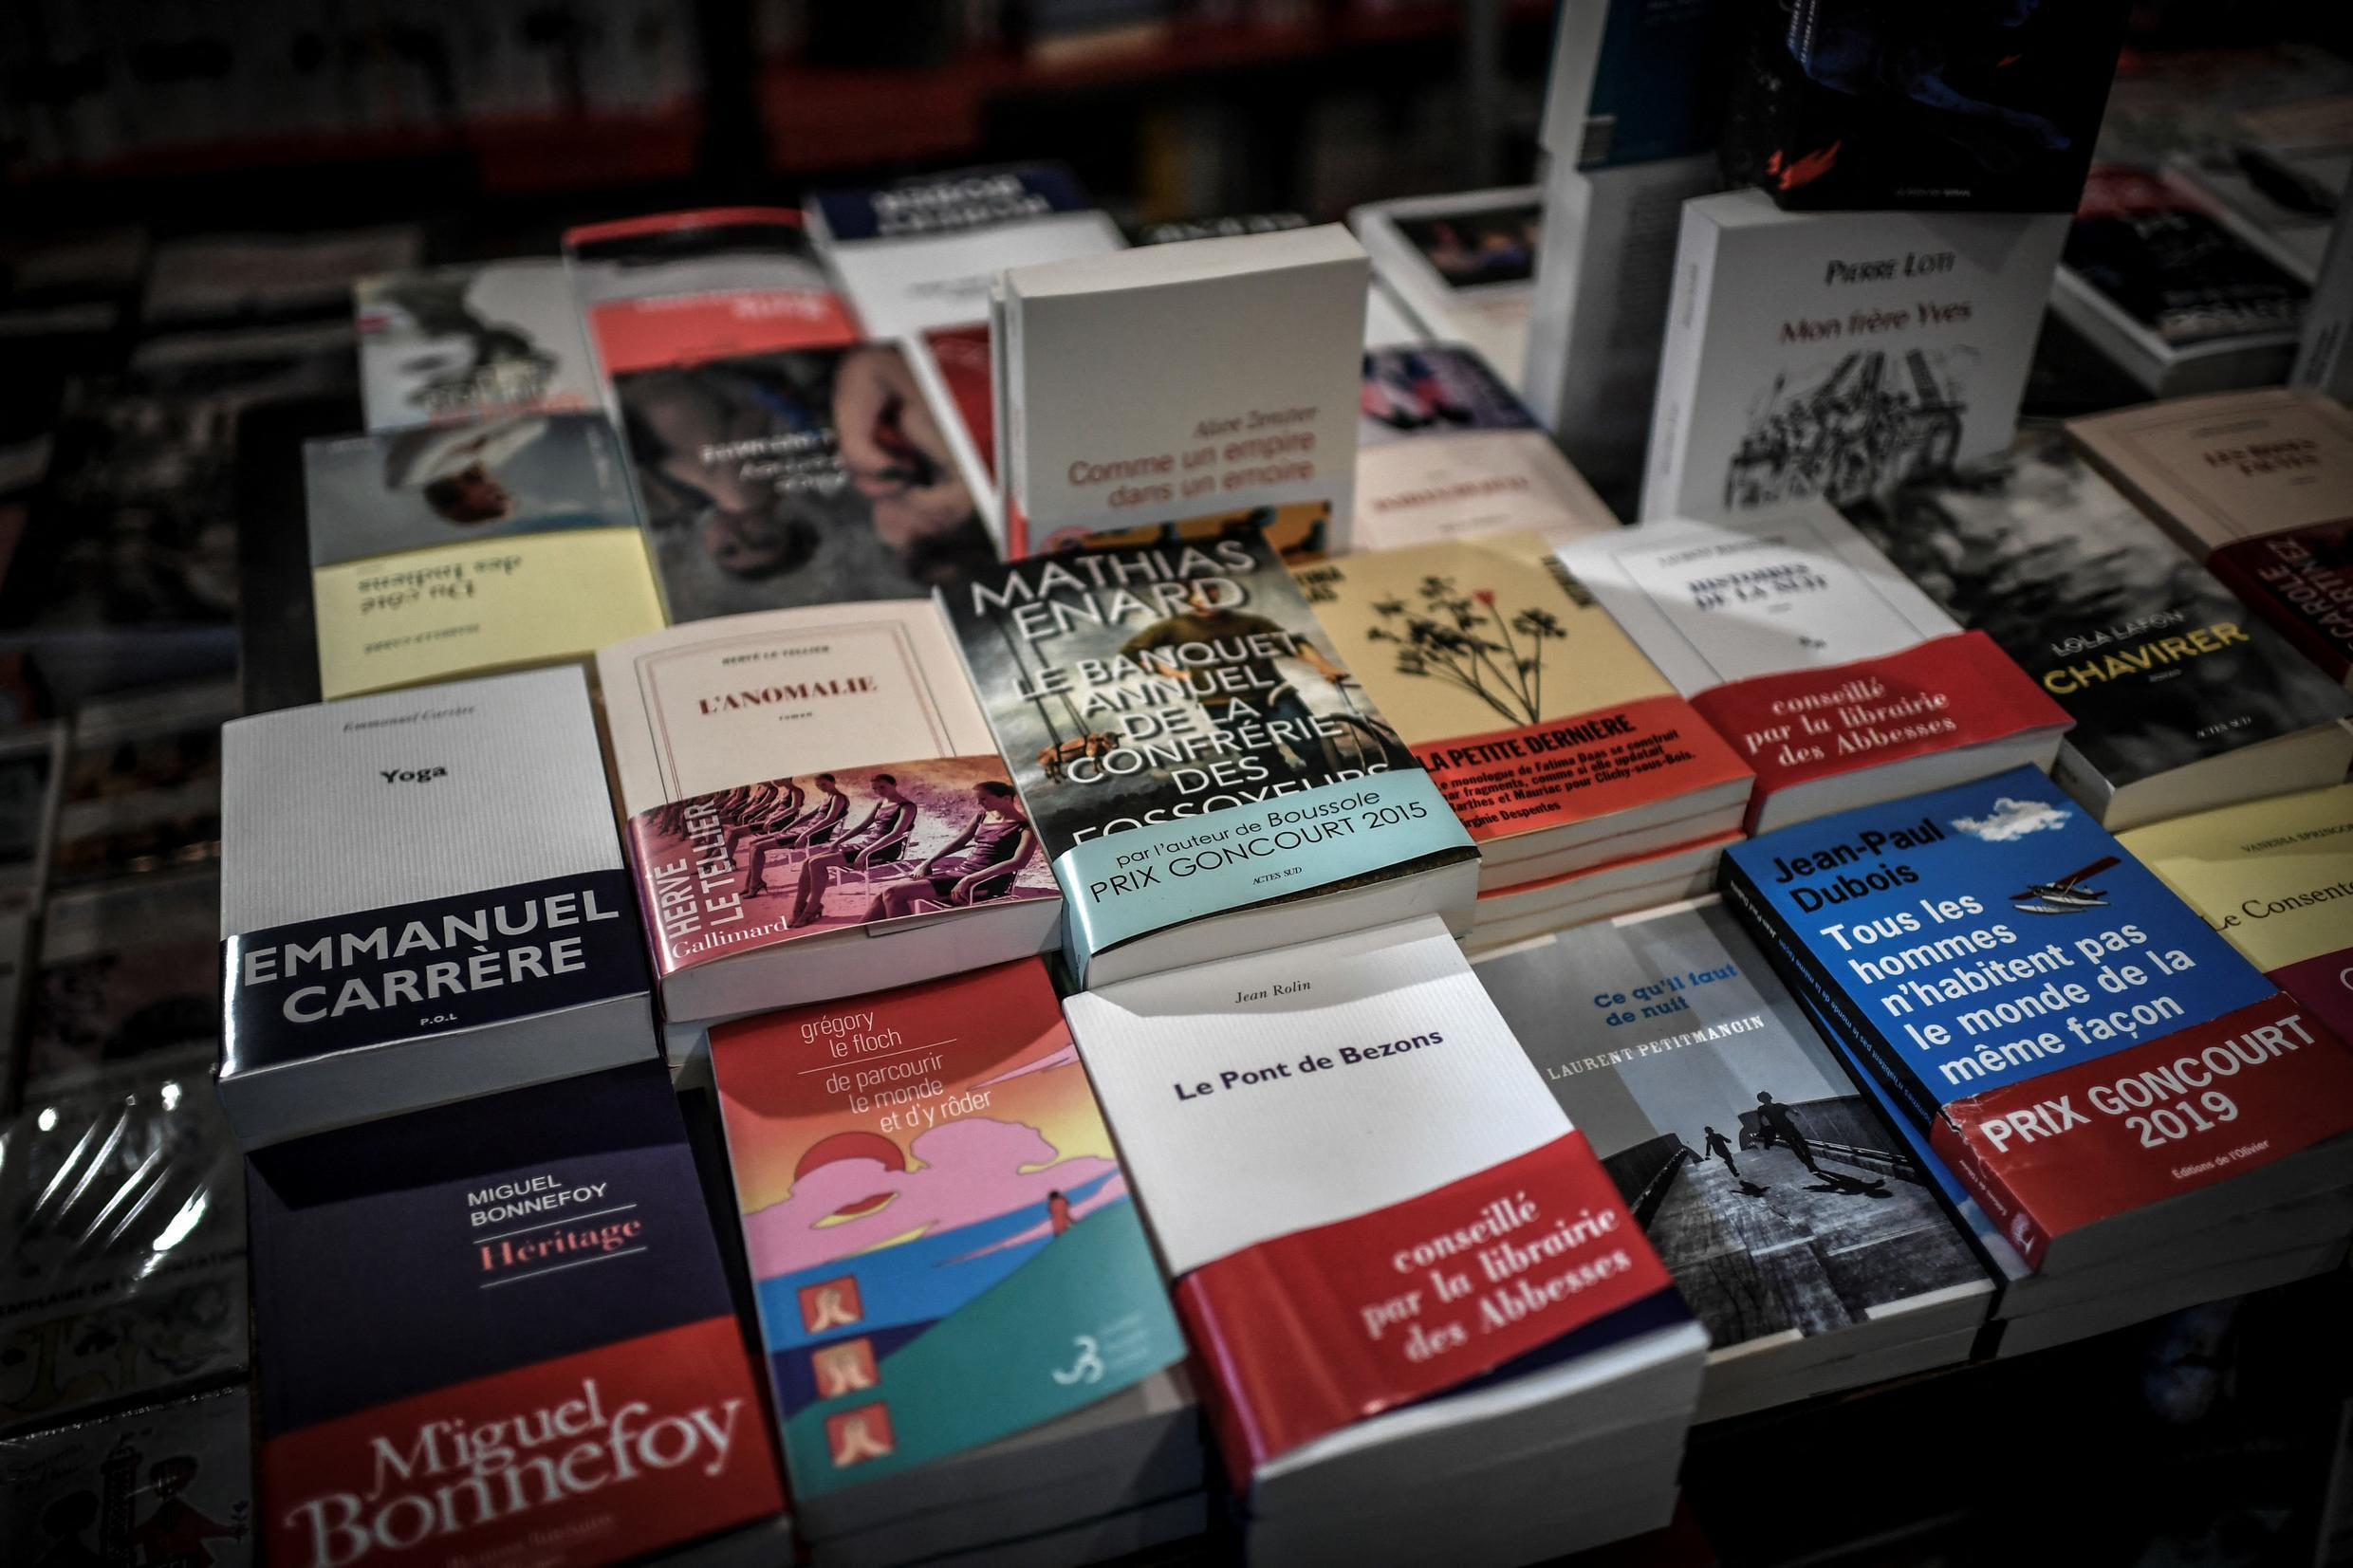 This photograph taken on November 2, 2020 shows books displayed at the Librairie des Abbesses bookstore in the Montmartre district in Paris on November 2, 2020.